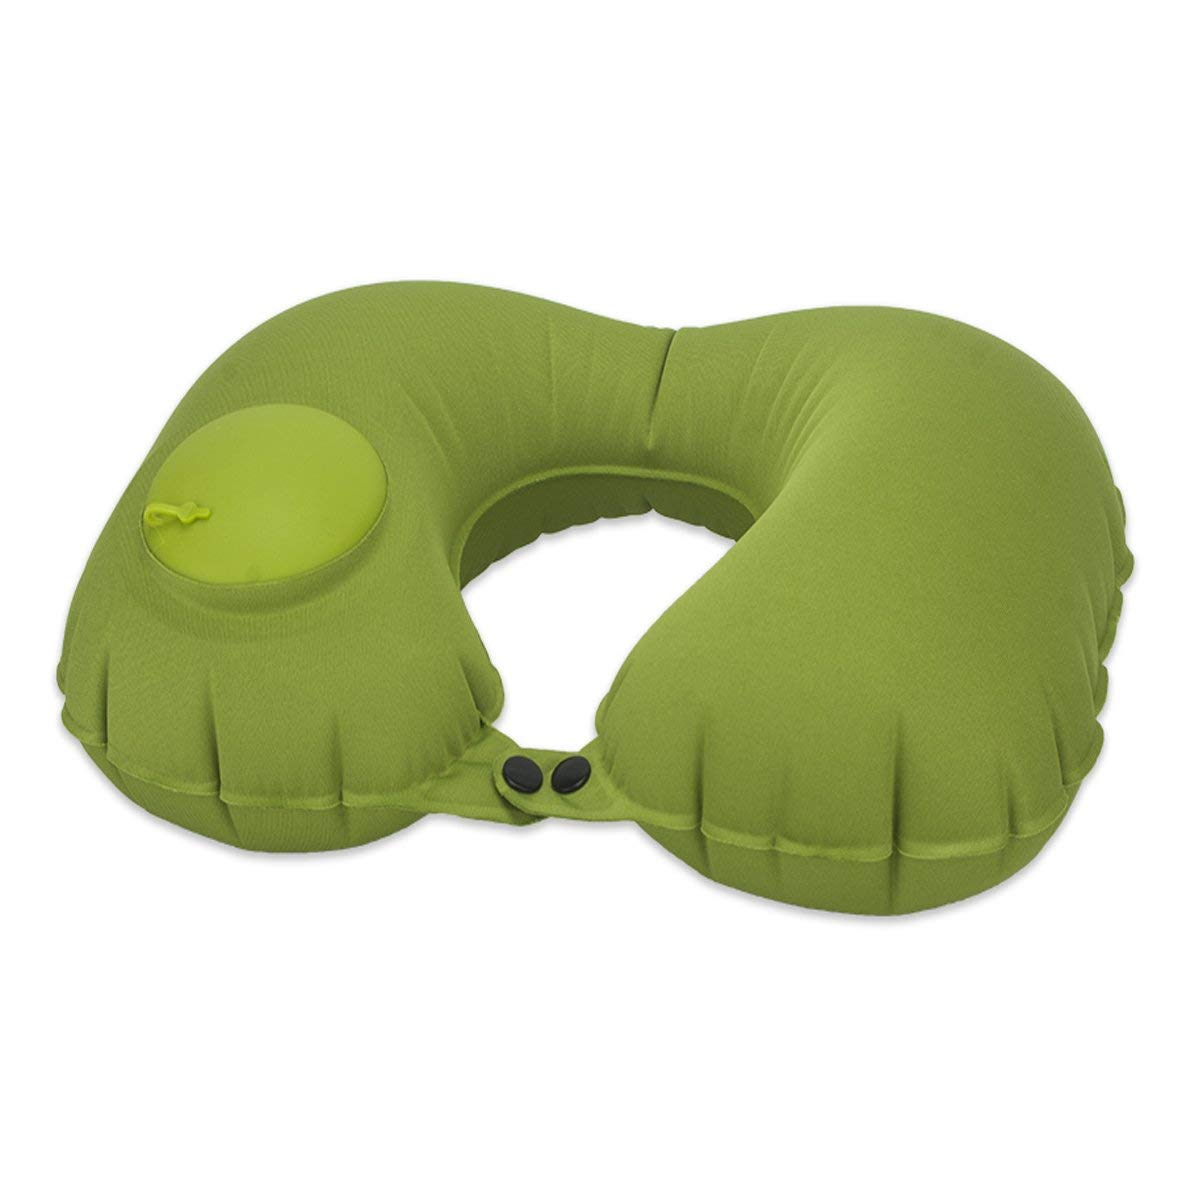 U Shape Neck Pillow, Adjustable Inflatable Travel Pillows for Airplanes, Multi-fonction Traveling Foldable Compact Self Inflating Neck Chin Support Rest Pillow for Cars, Buses, Trains, Office Napping